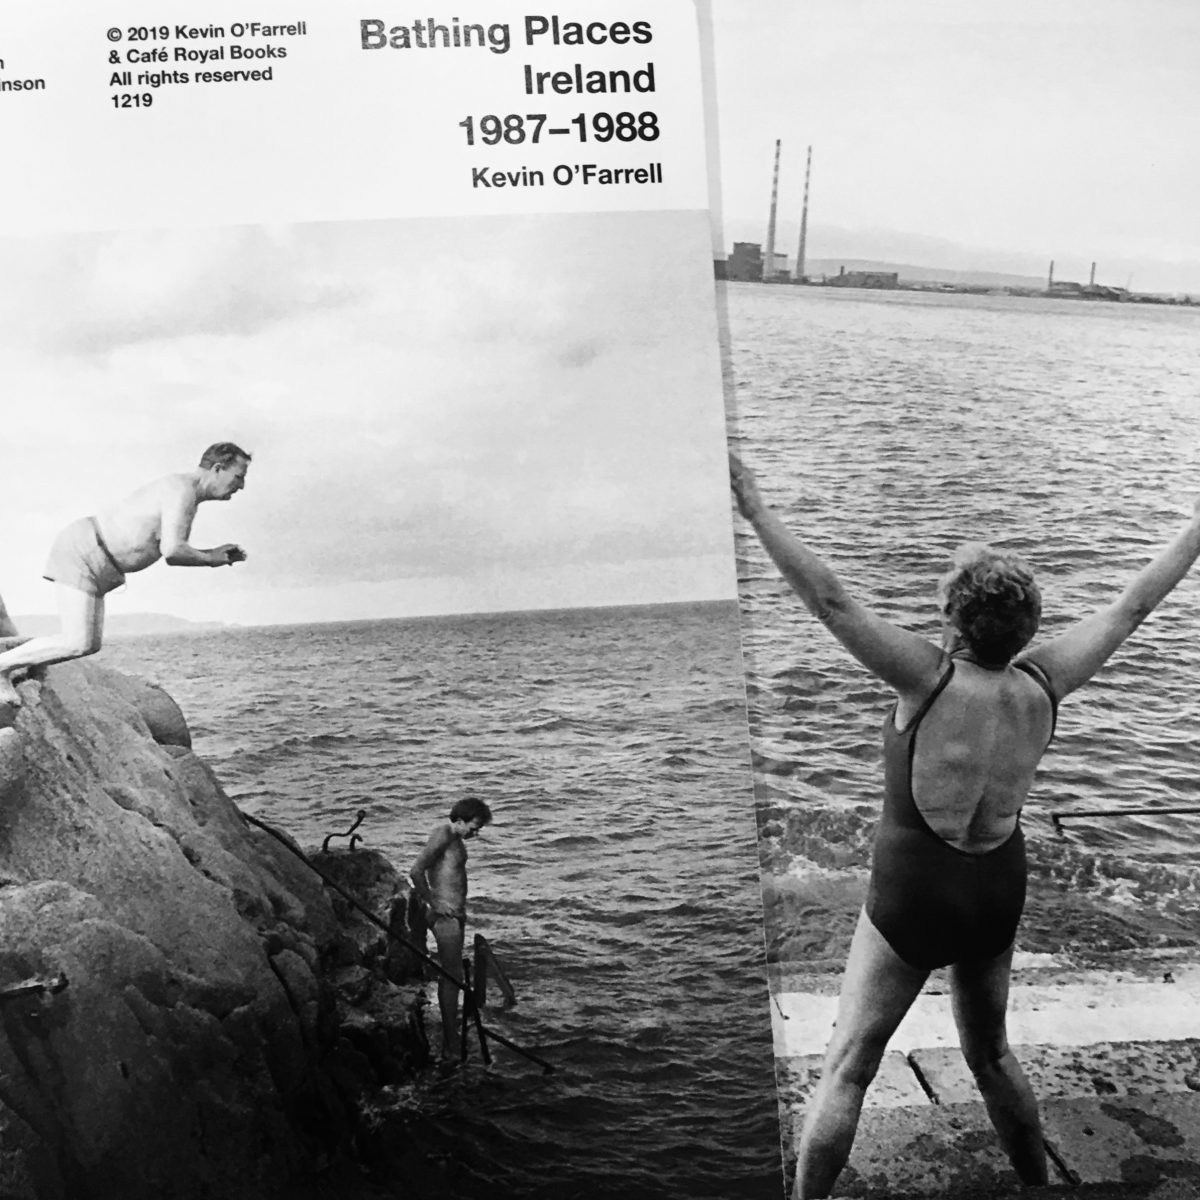 Bathing Places Ireland 1987 – 1988